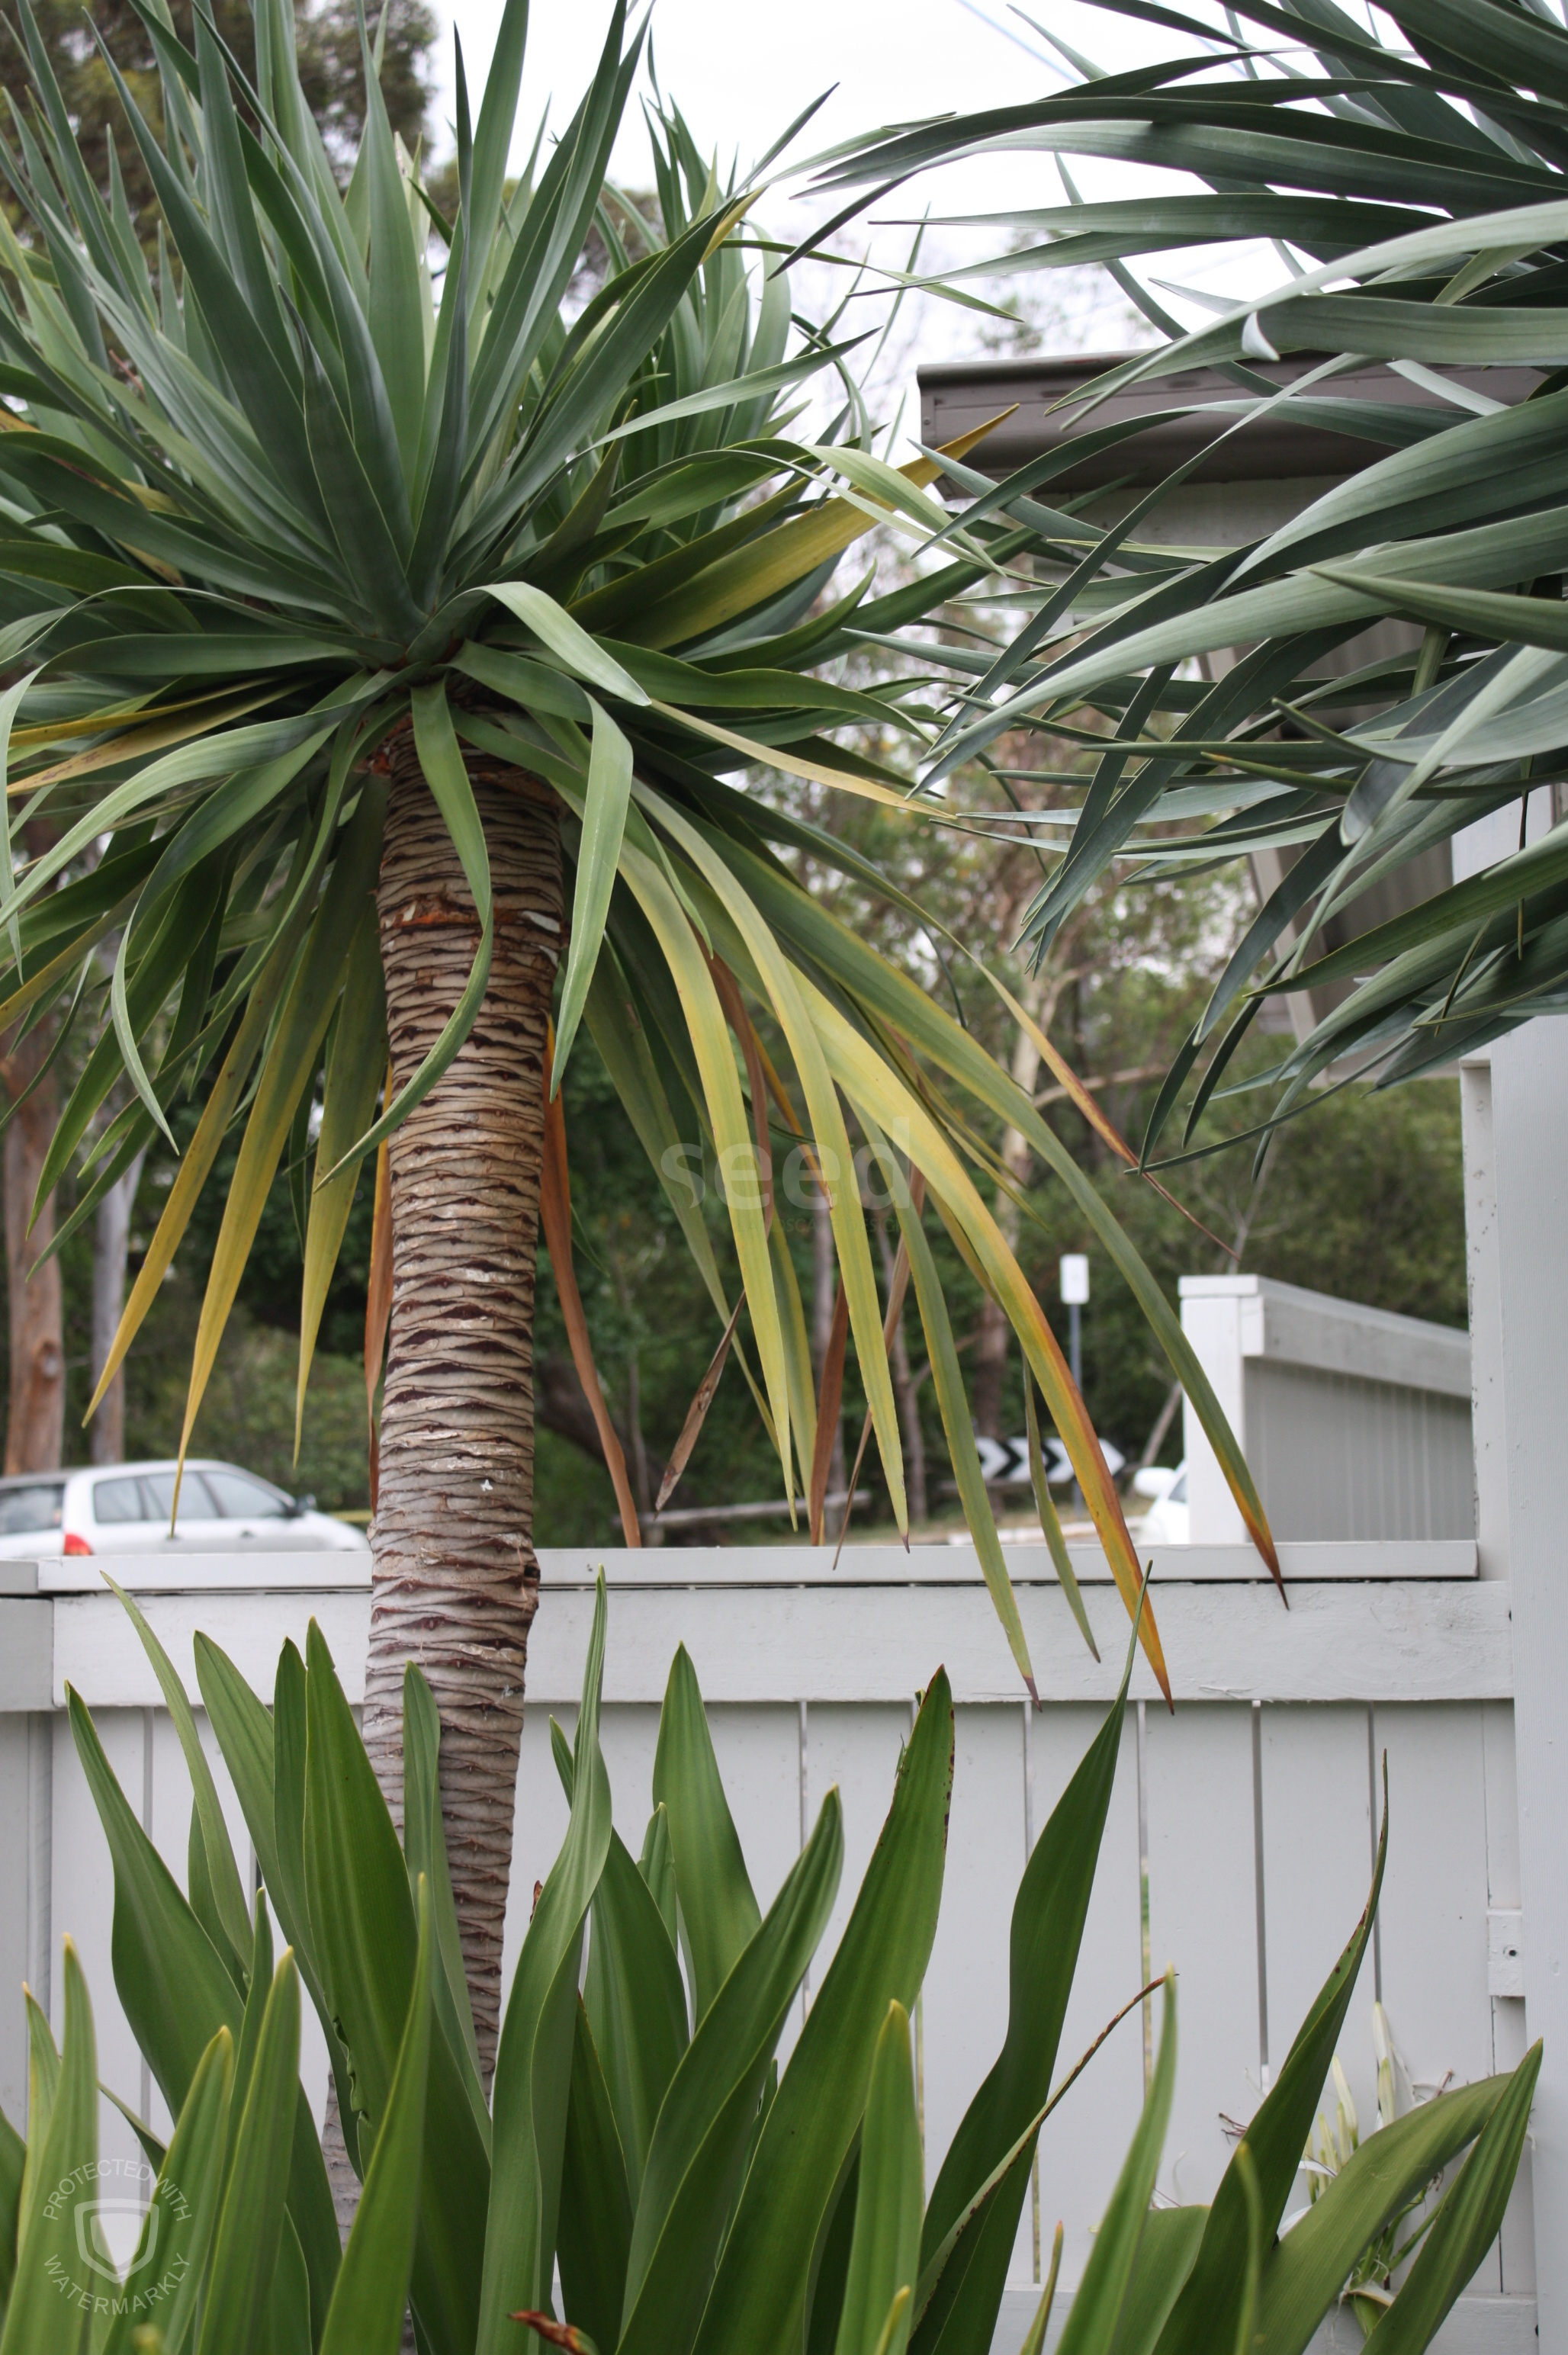 Dragon Trees contrast beautifully against the white picket fence providing an architectural, formal line, in keeping with the design aesthetic.